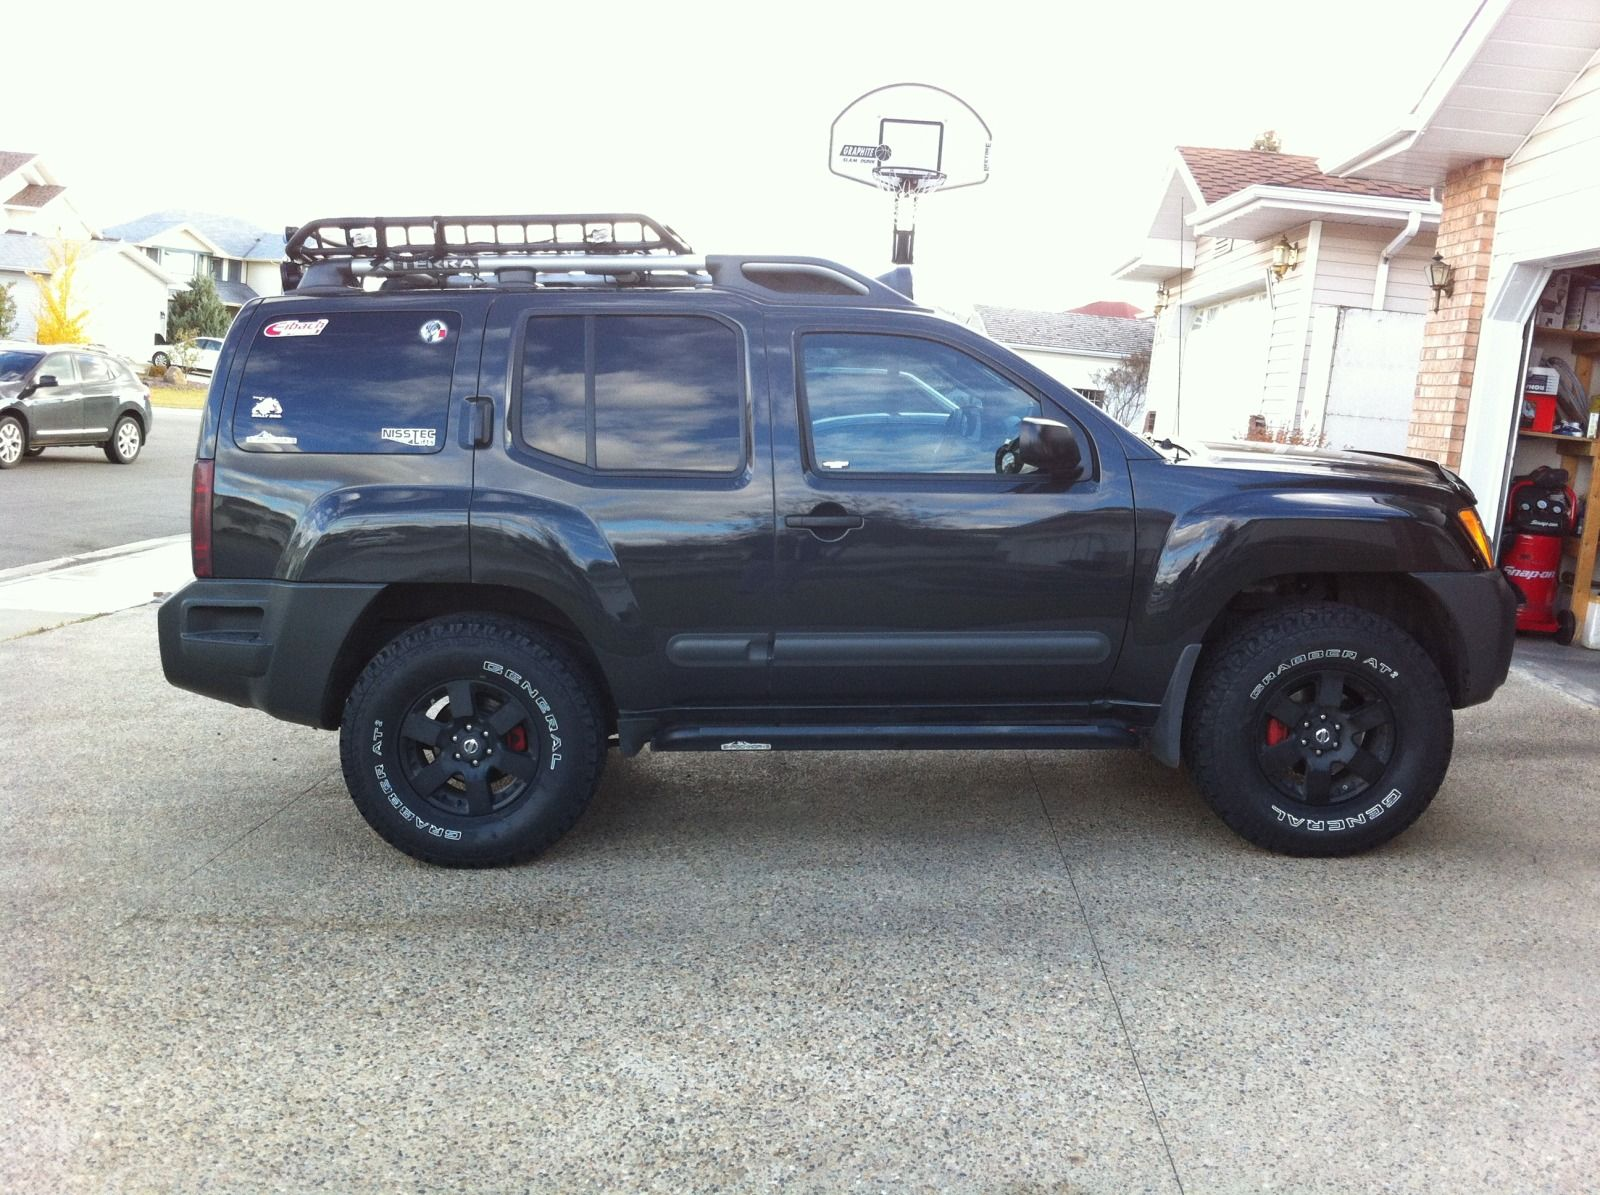 Wasabis Pro 4x Dark Knight Lifted 33 Totron Added Picture Heavy Thread Second Generation Nissan Xterra Forums 2 Nissan Xterra Nissan Nissan Pathfinder